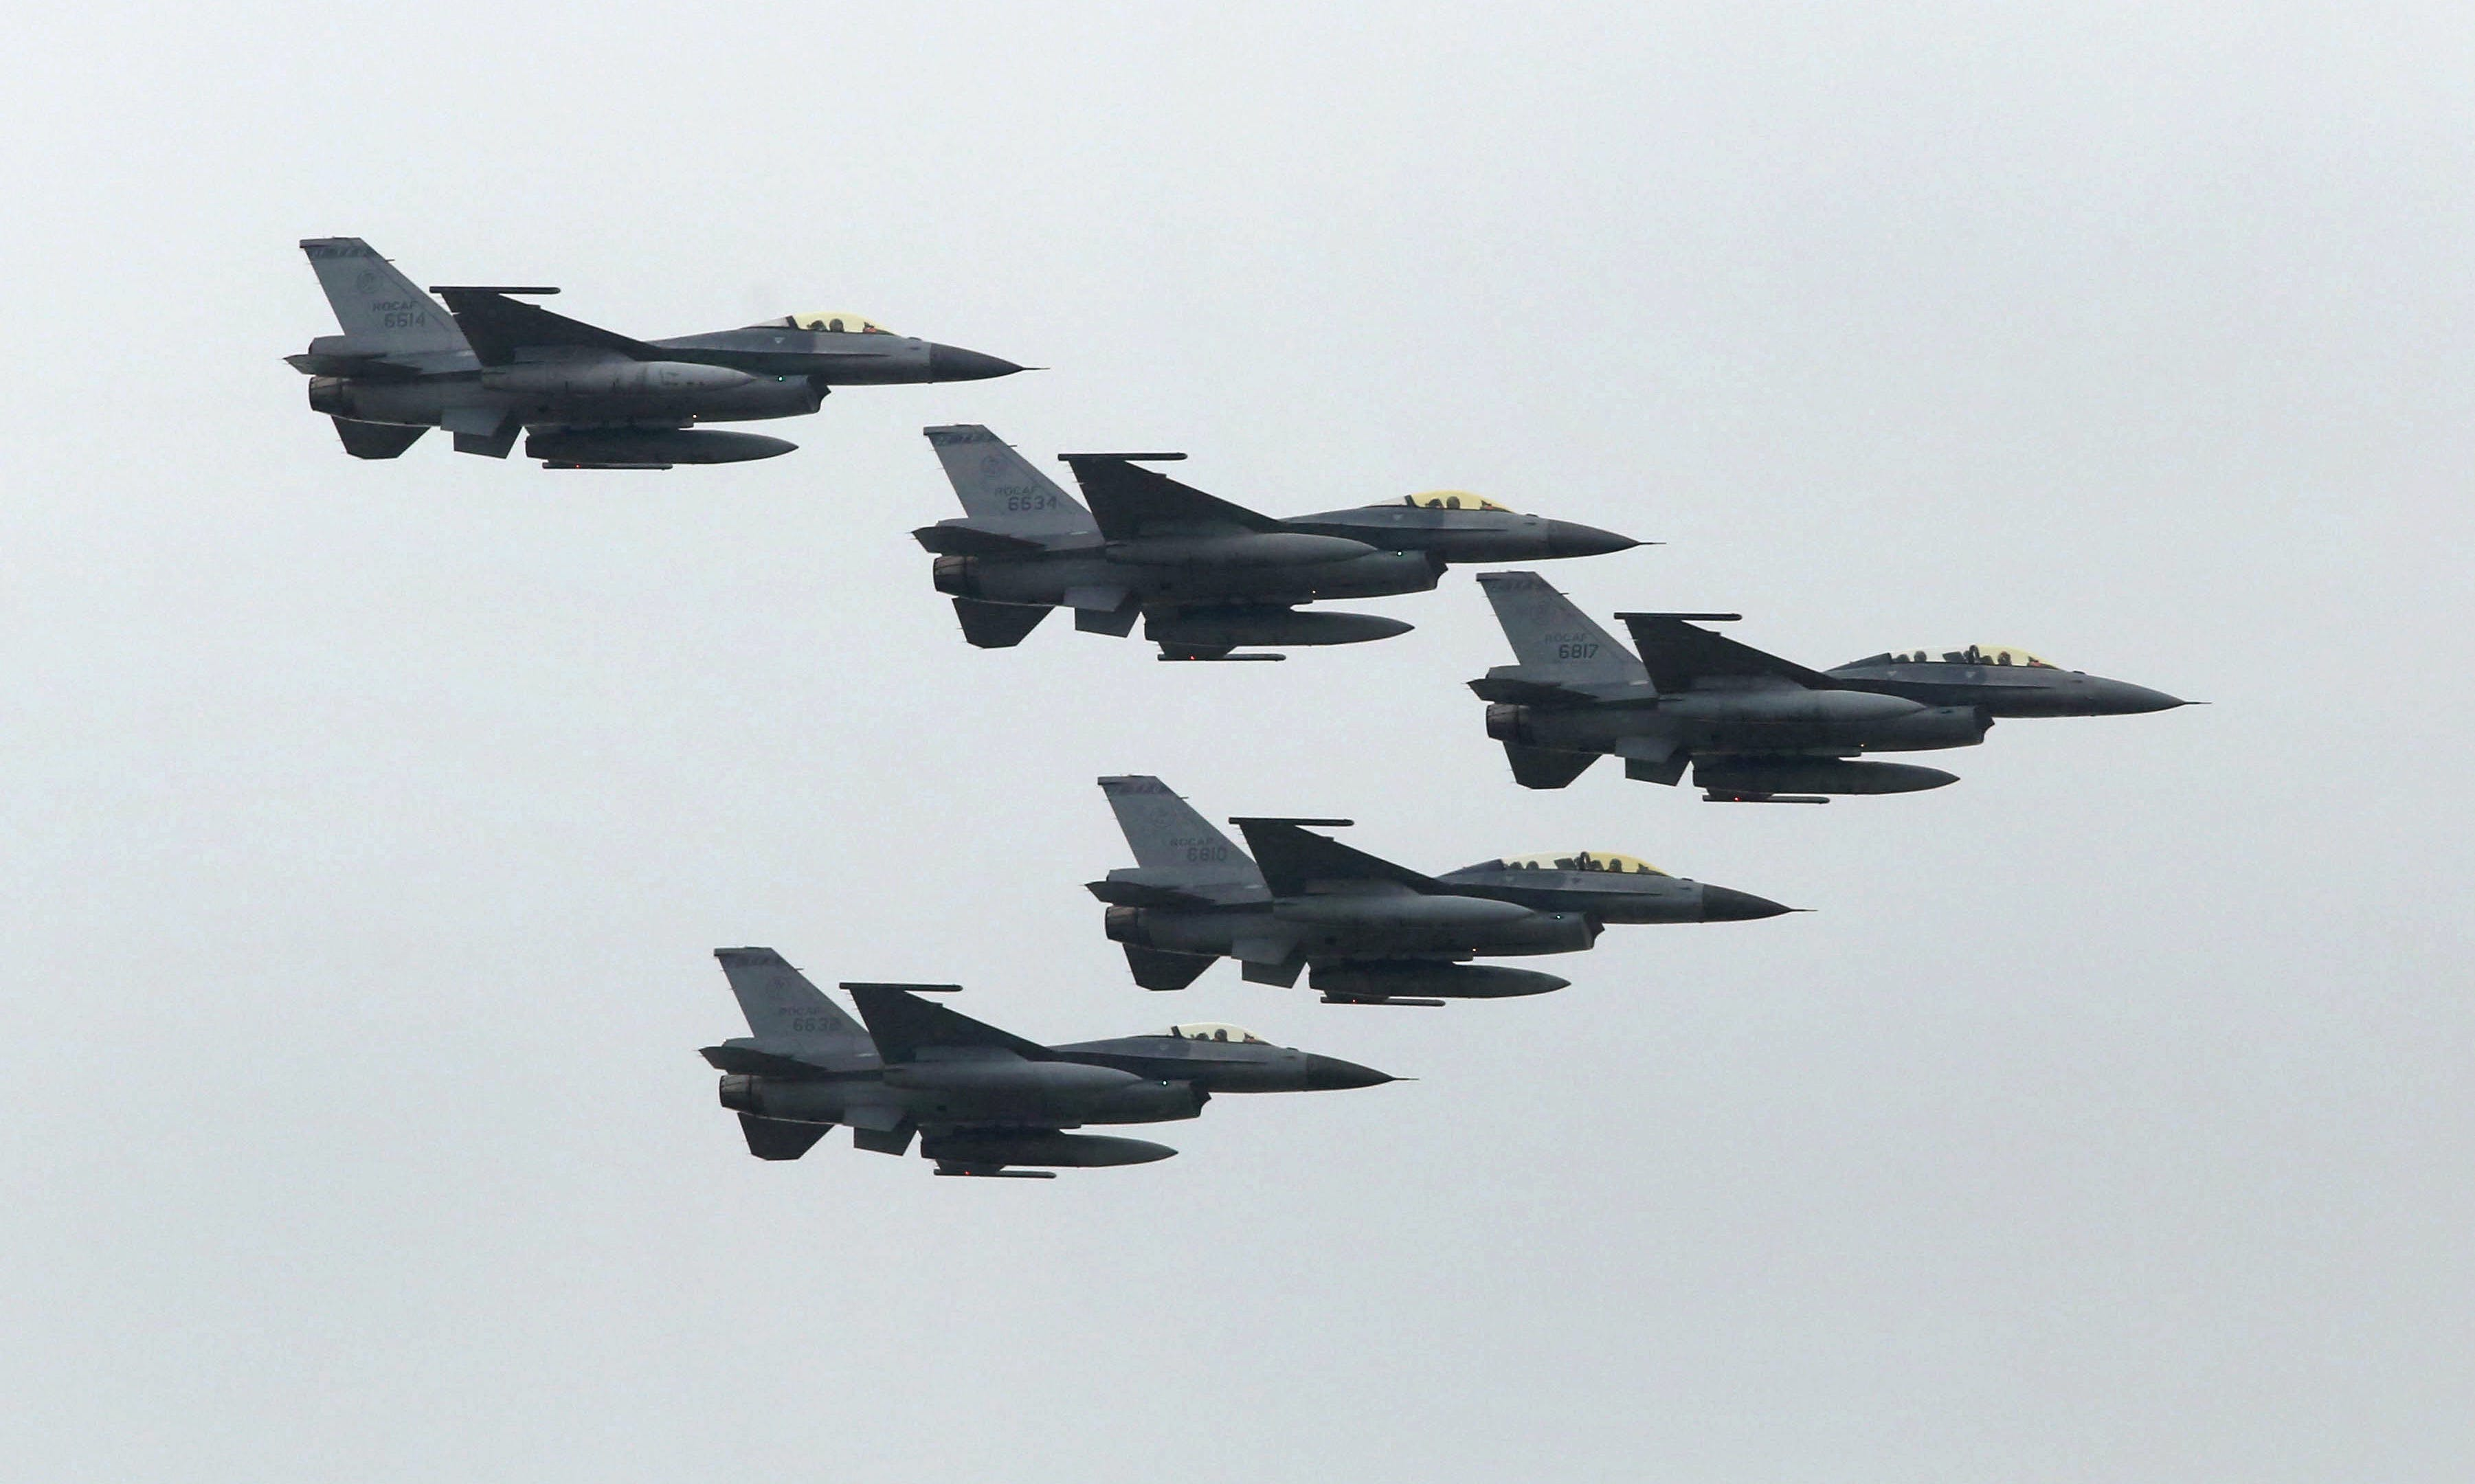 Taiwan Officially Makes Request to Buy New Fighter Jets From United States